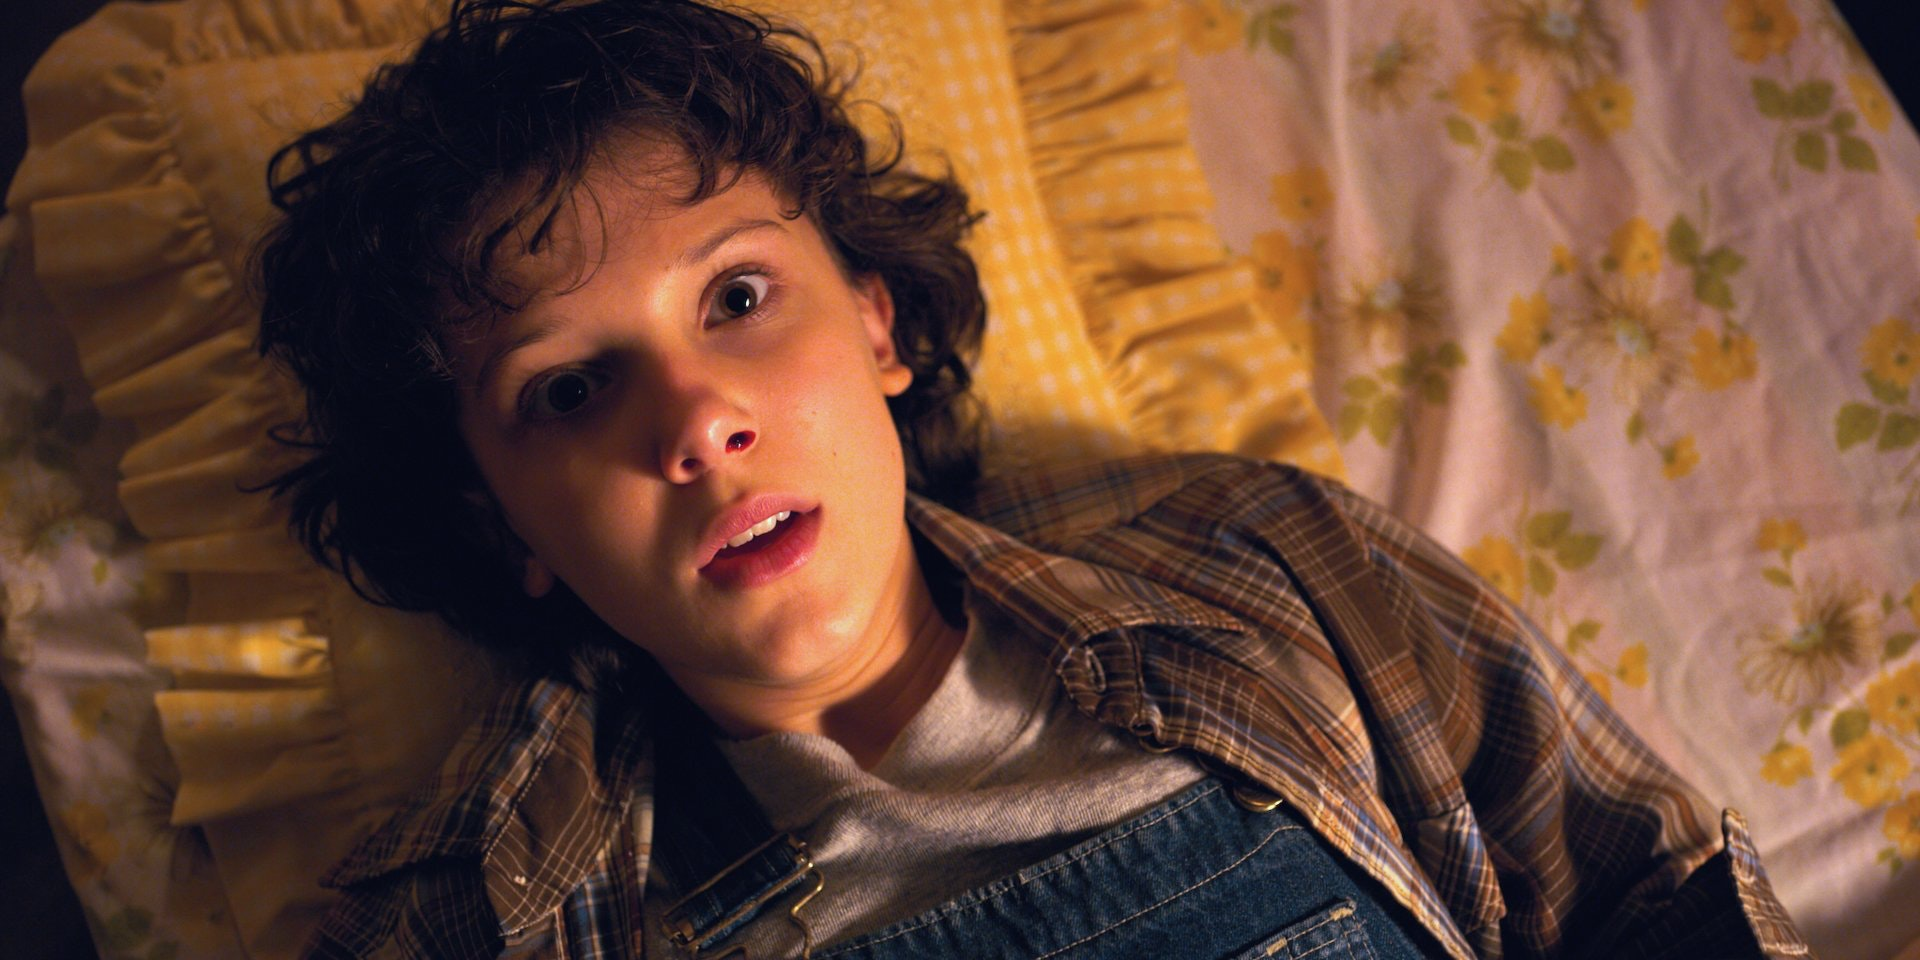 'Stranger Things' Season 3 Release Date, Characters, Plot, and Episodes